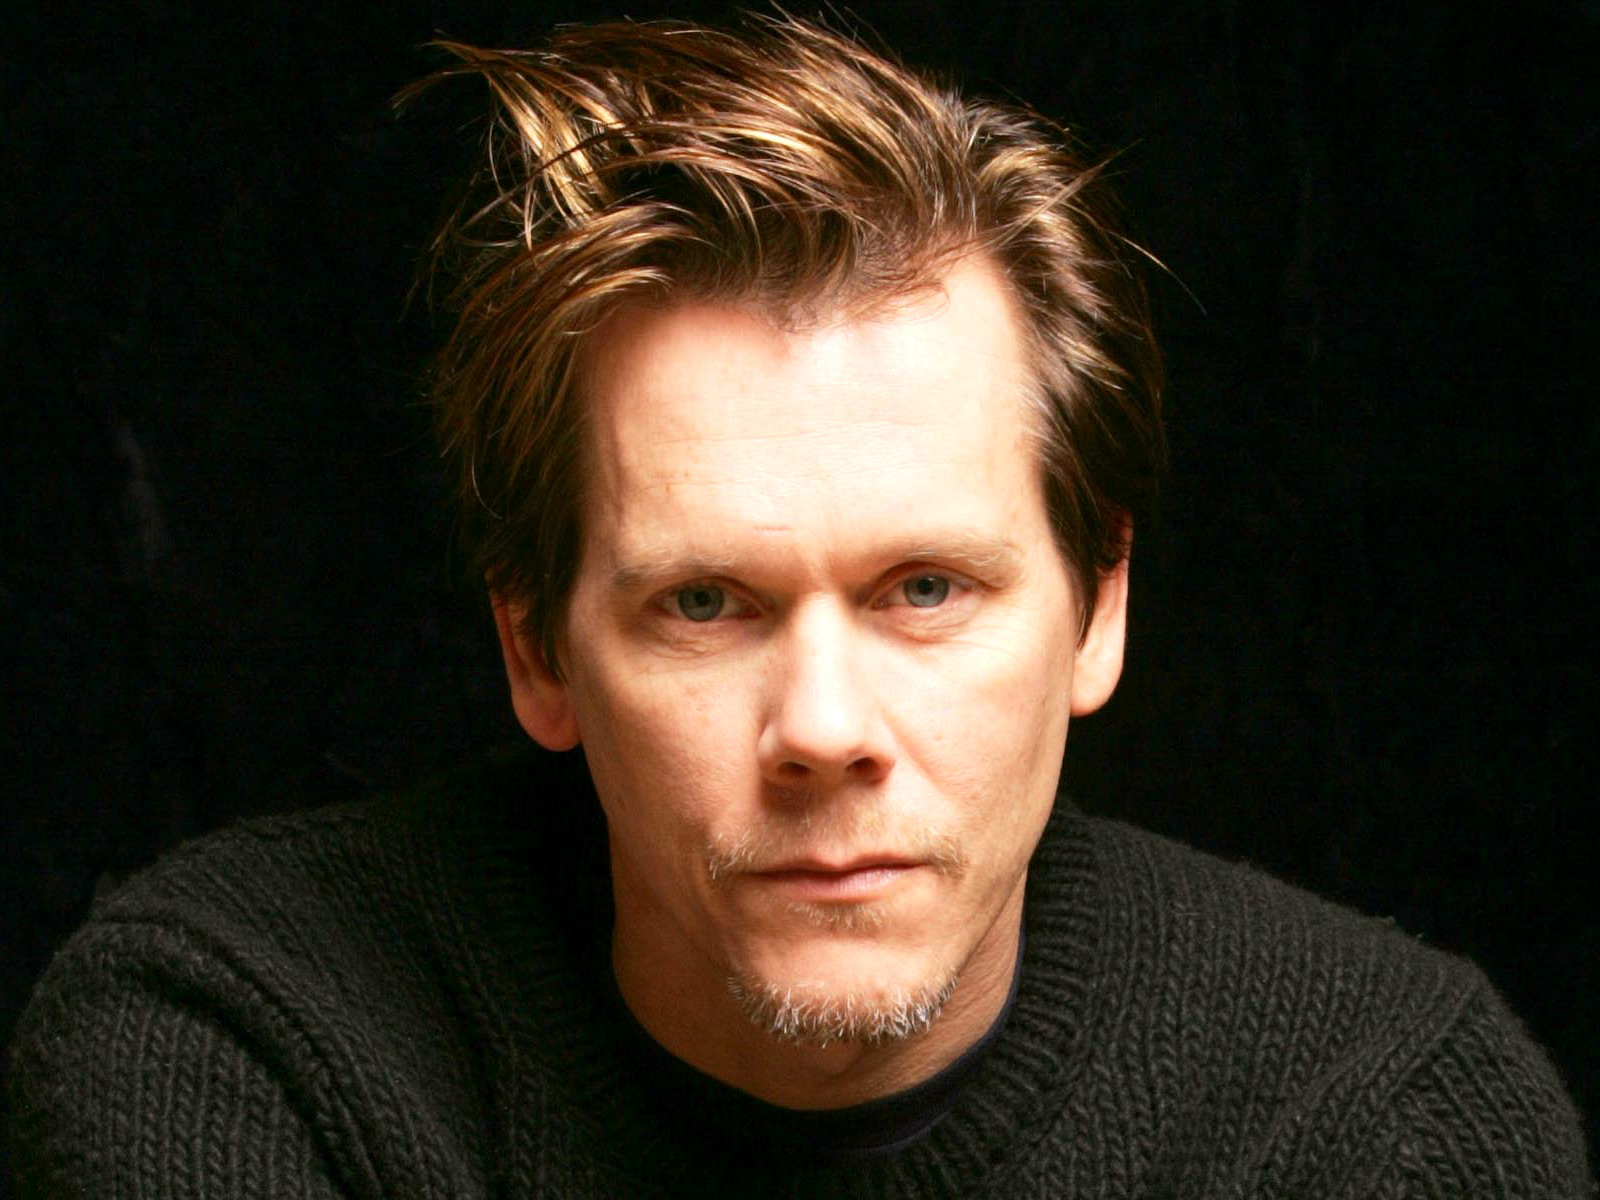 Pictures of Kevin Bacon   Pictures Of Celebrities 1600x1200